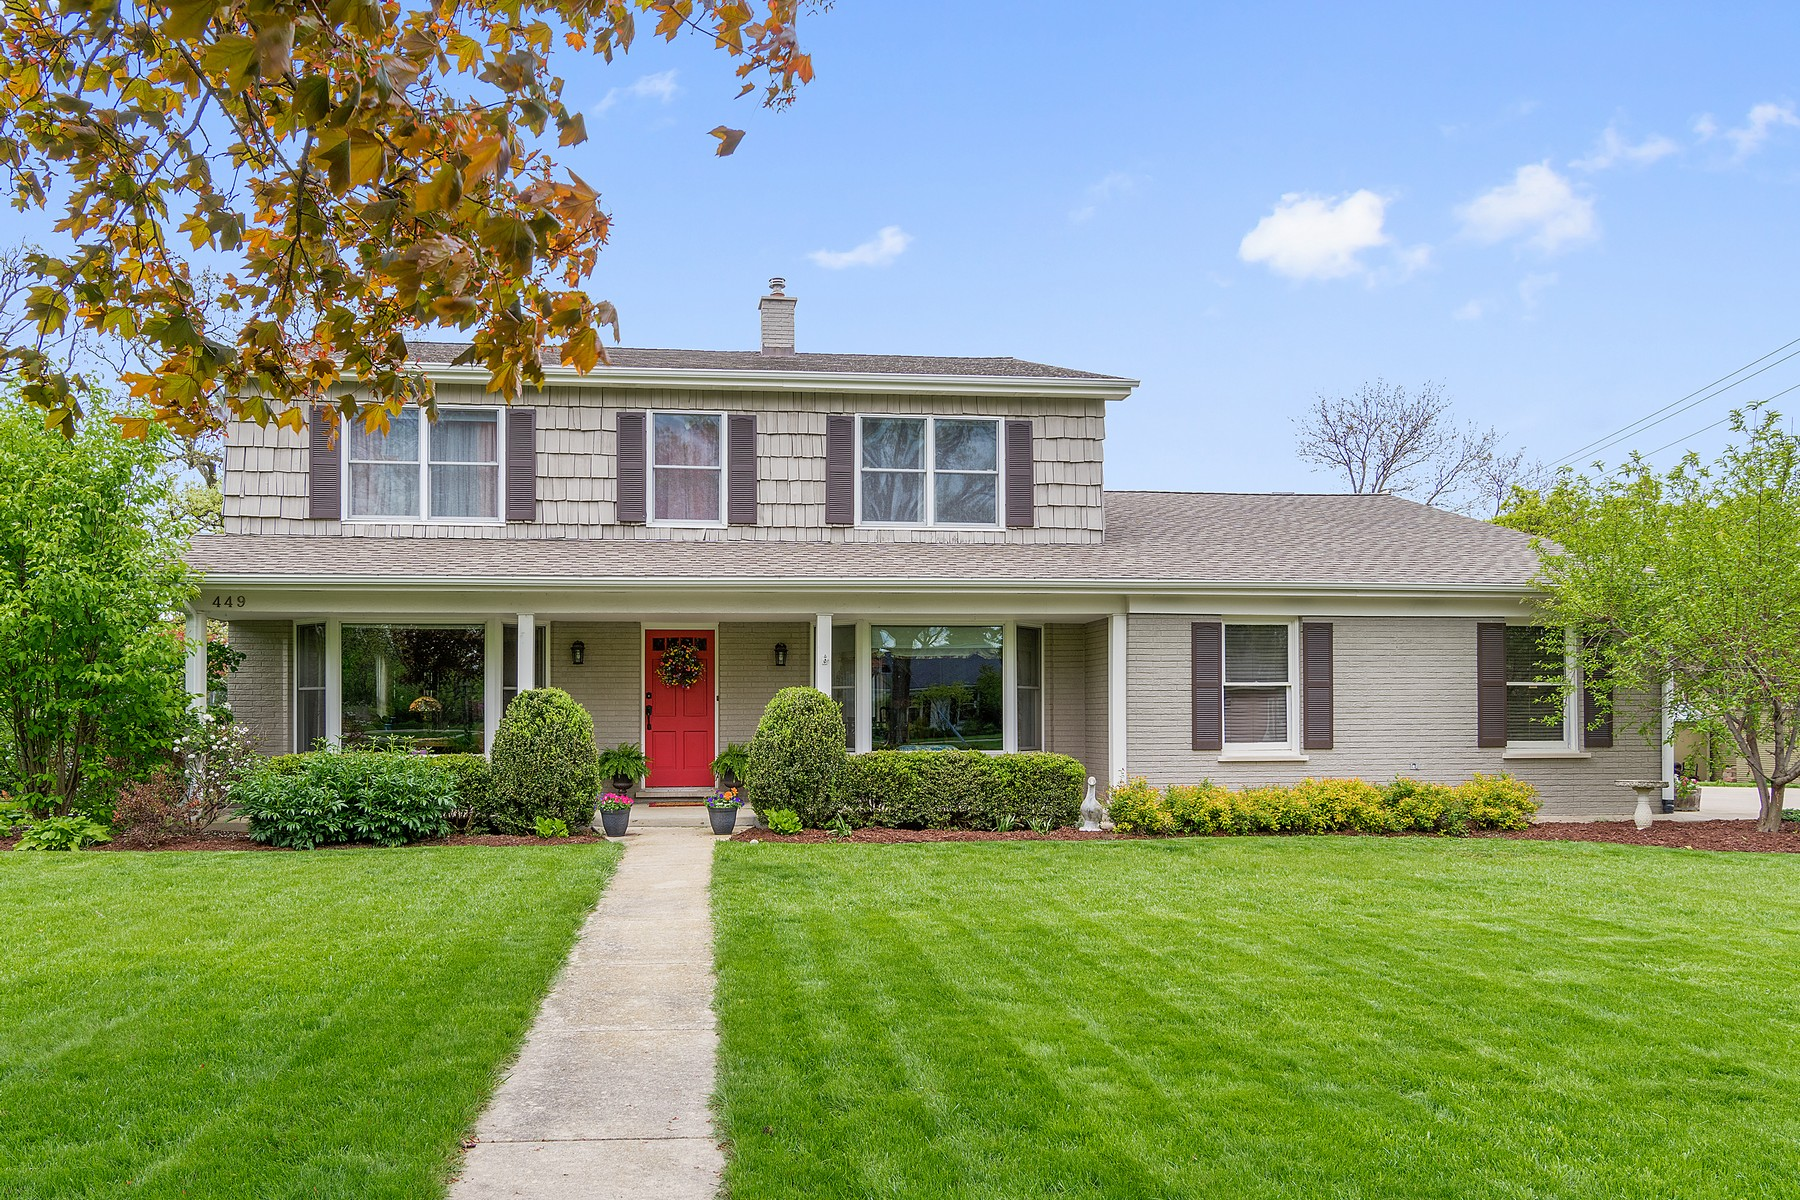 Single Family Home for Sale at 449 Briargate 449 Briargate Terrace Hinsdale, Illinois, 60521 United States